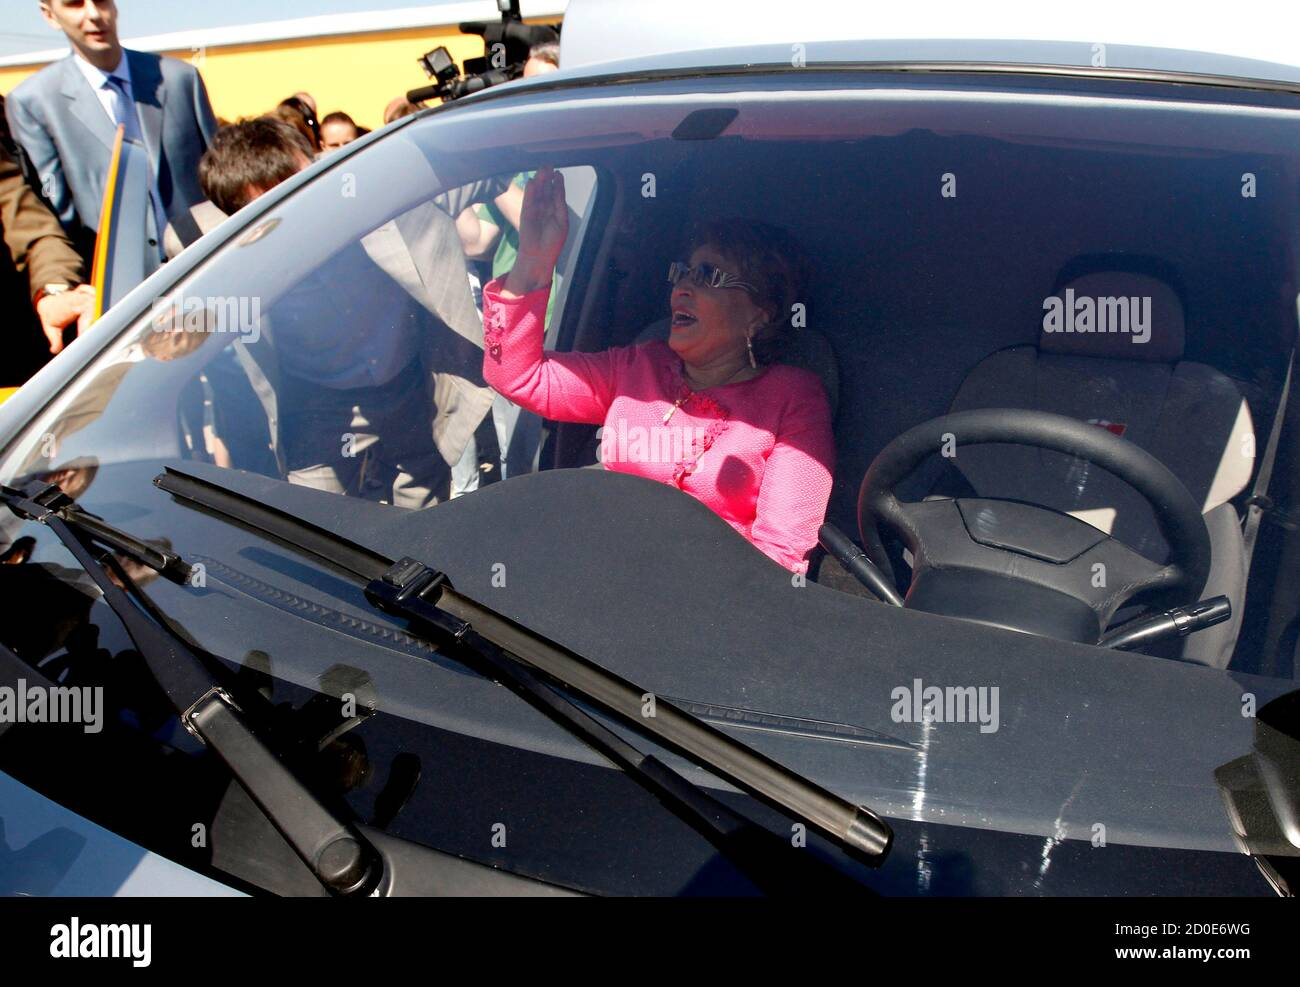 """St. Petersburg's Governor Valentina Matviyenko sits in a Furgon automobile as she takes part in a ceremony to start the construction of the plant to produce Russian new car brand """"e"""" automobiles, designed by Onexim Group company, owned by billionaire Mikhail Prokhorov, outside St. Petersburg June 8, 2011. Russian new car brand """"e"""" (""""e with two dots above"""" is the seventh letter in Russian alphabet) automobiles will become the world's cheapest hybrids, priced at $10,000, according to the company's representatives.  REUTERS/Alexander Demianchuk  (RUSSIA - Tags: BUSINESS TRANSPORT CONSTRUCTION POL Foto de stock"""